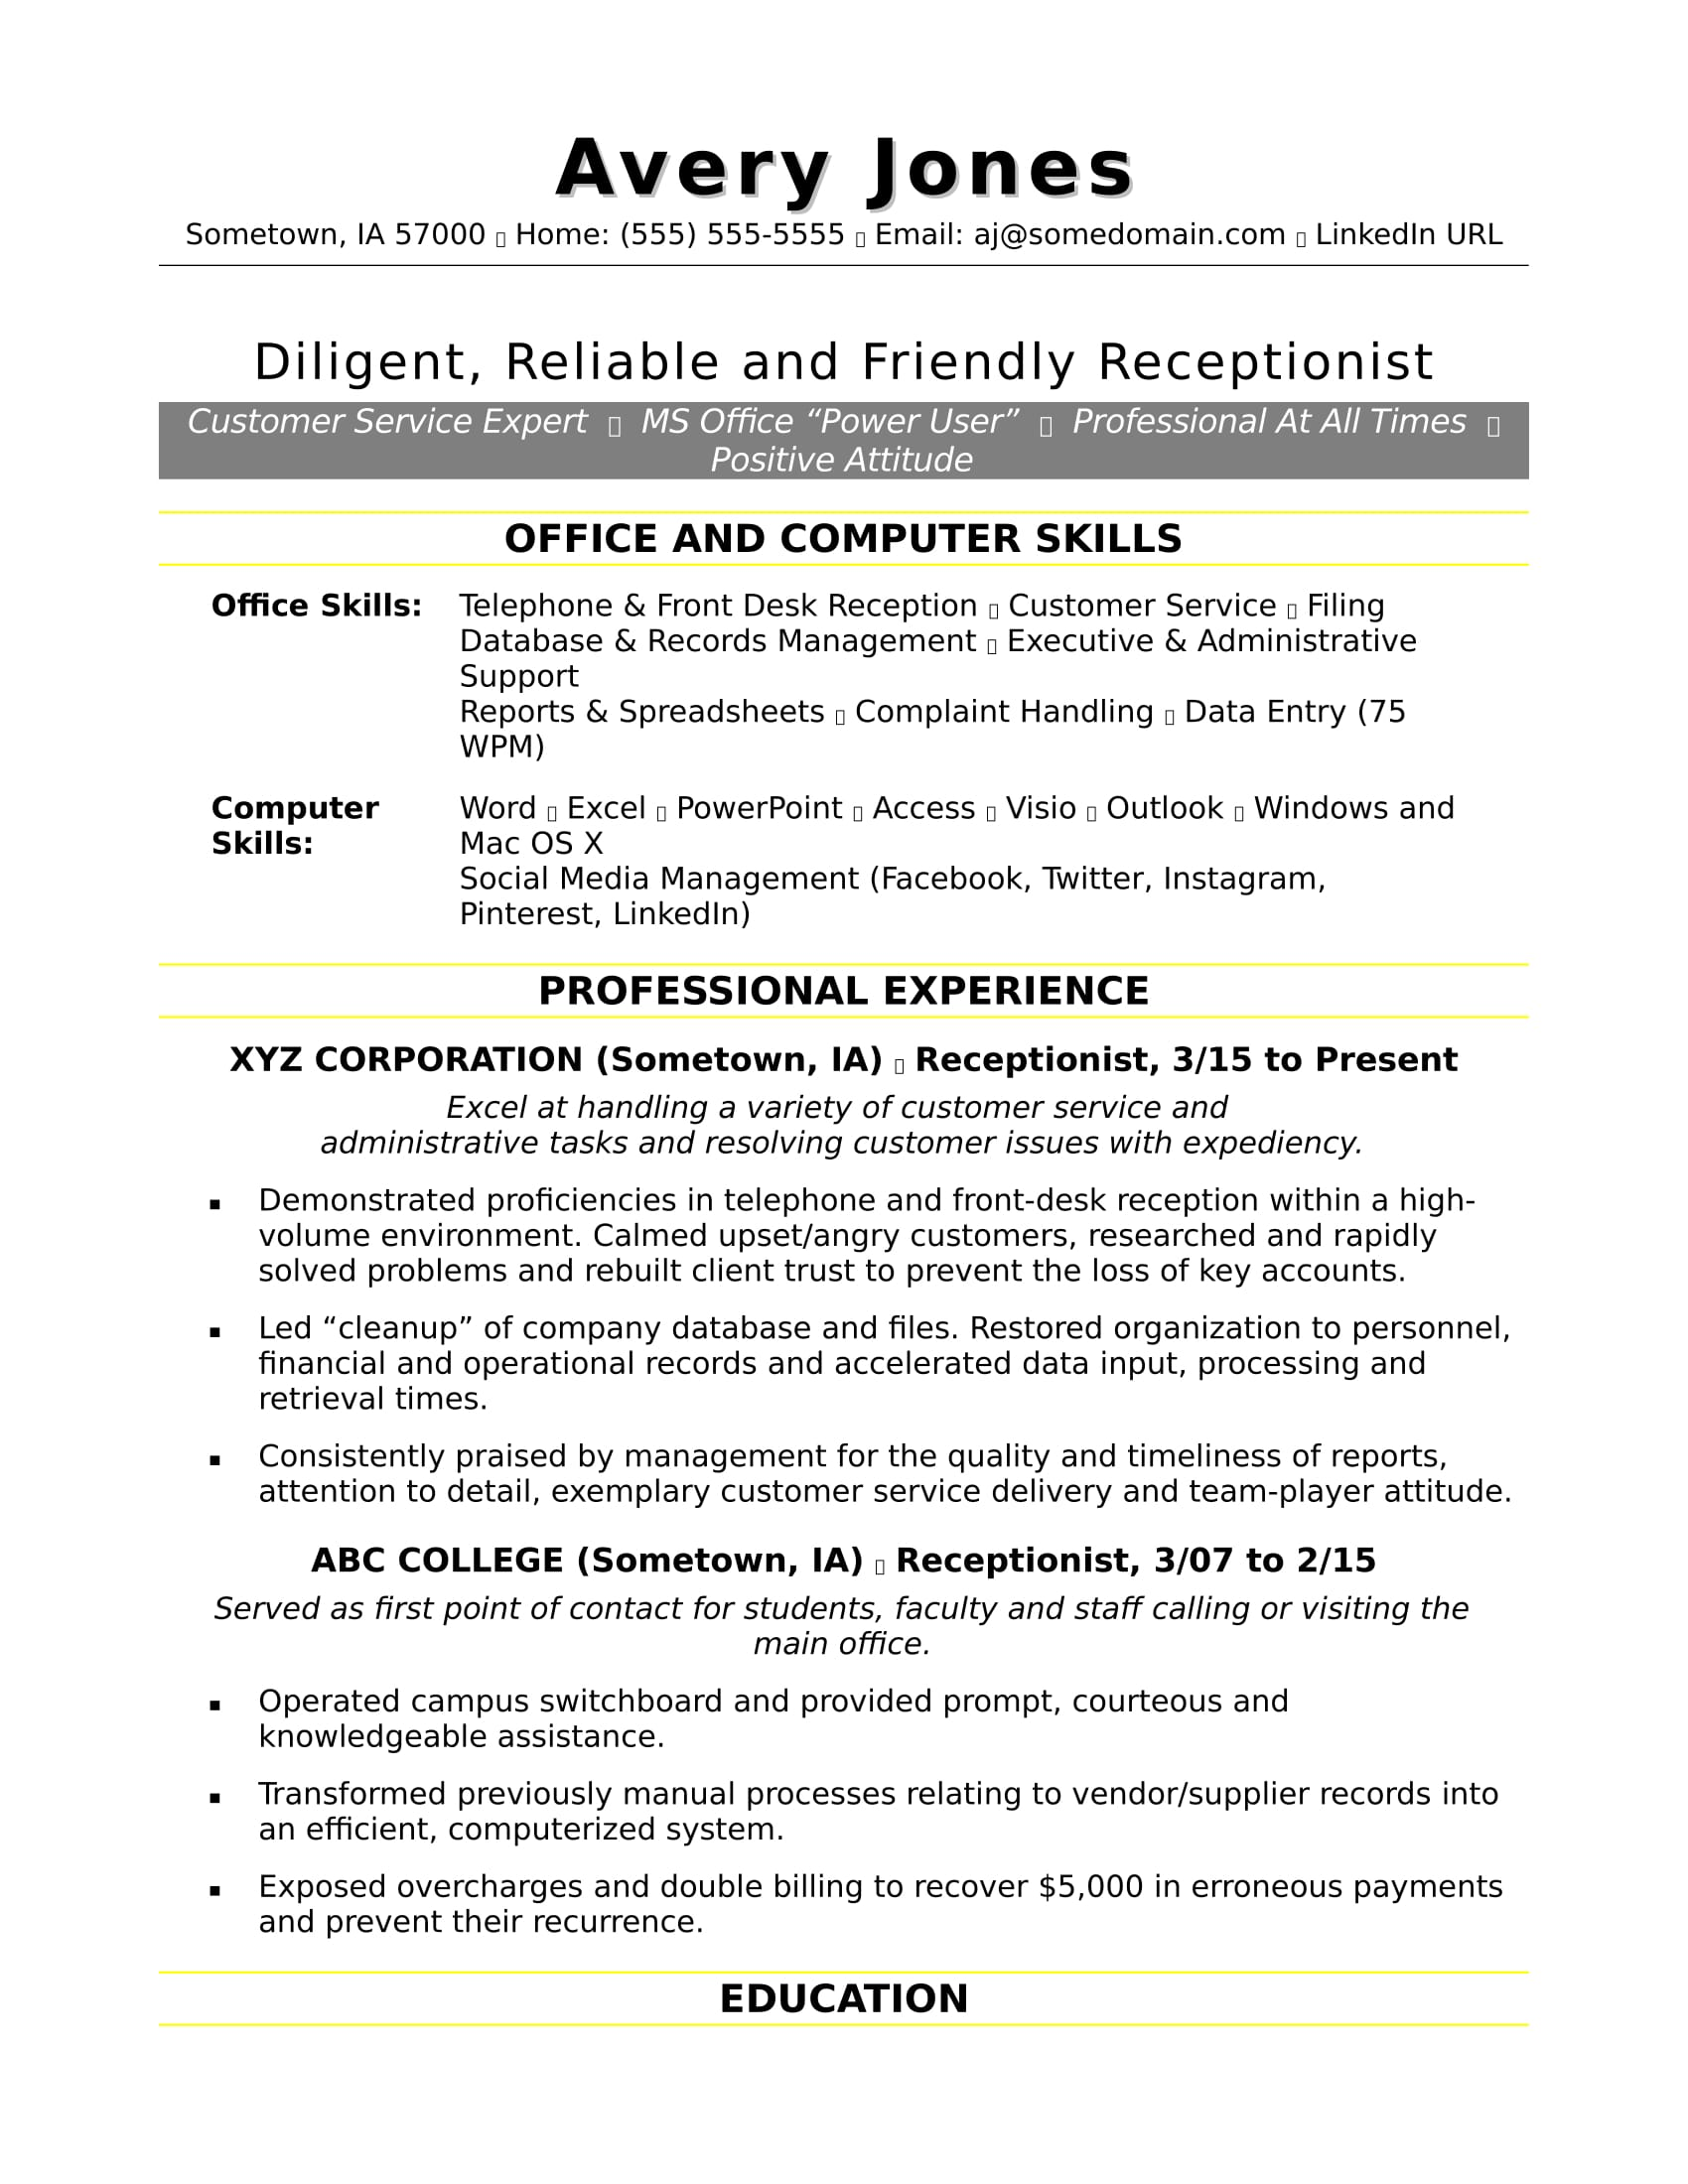 receptionist resume sample monster description for dos and don ts high school students Resume Receptionist Description For Resume